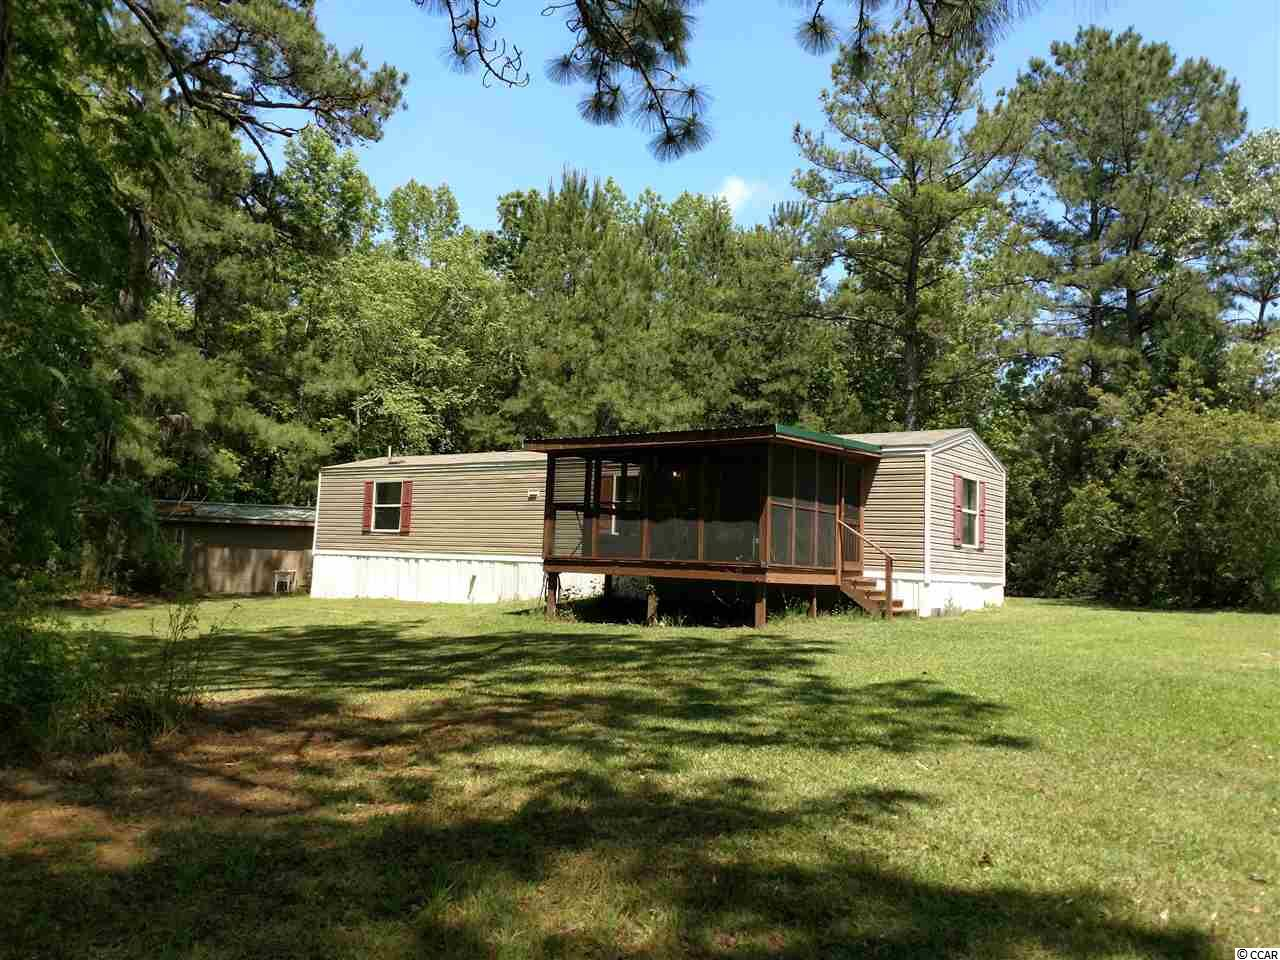 1.6 acres located on the North Santee River. A walk way from the home to the river. Perfect for crabbing, shrimping and fishing. Has a 2016 14x60 manufactured home. Has a 12x16 screened in front porch. With a 14x38 shop/boat storage. Could be used as a weekend getaway or permanent residence. About 10 miles from Historic Downtown Georgetown. Shopping, waterfront restaurants and shopping. Georgetown was voted USA TODAY Best Coastal Small Town in America 2018. Square footage is approximate and not guaranteed. Buyer is responsible for verification.